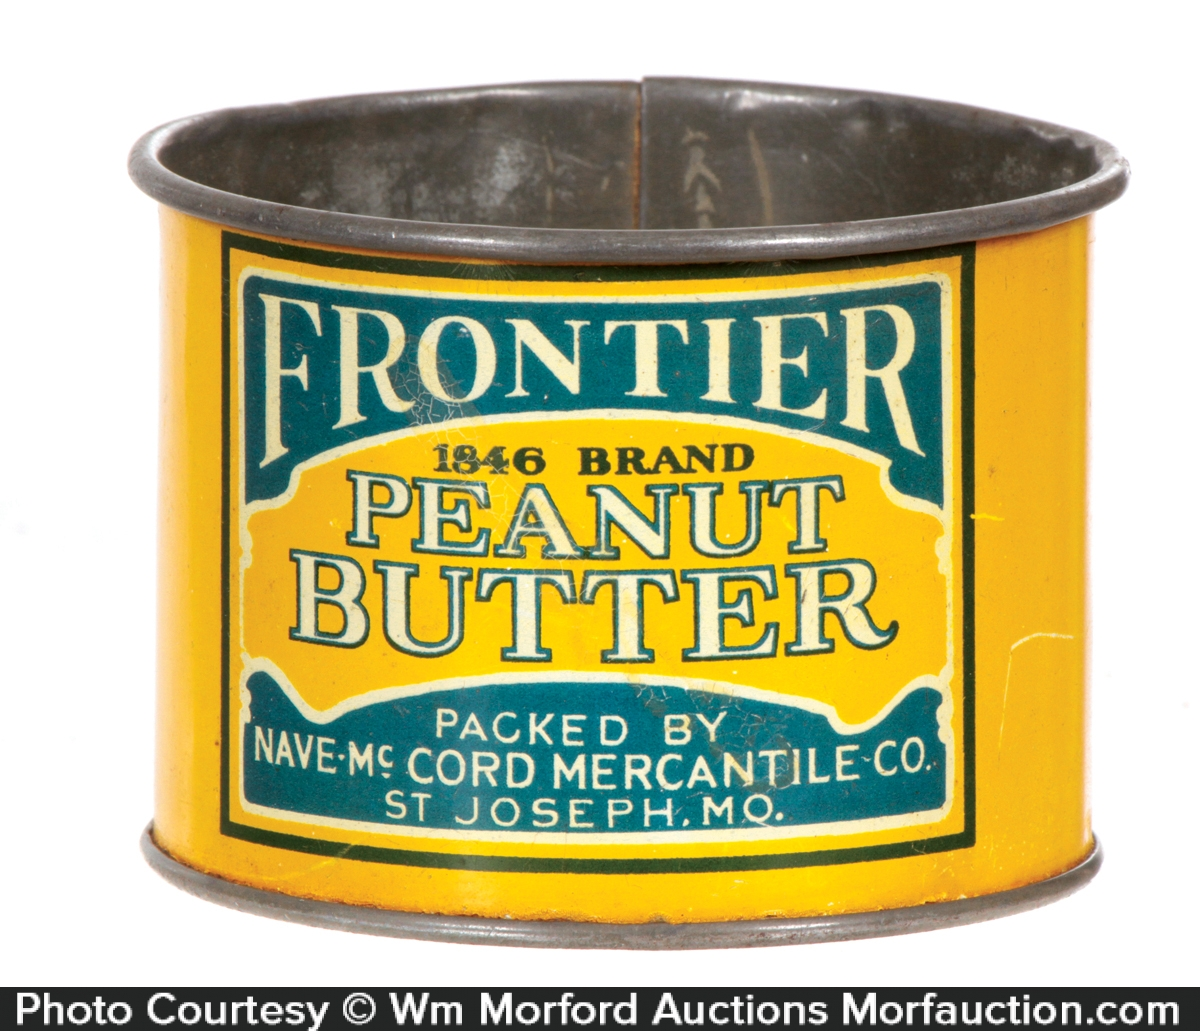 Frontier Peanut Butter Cup